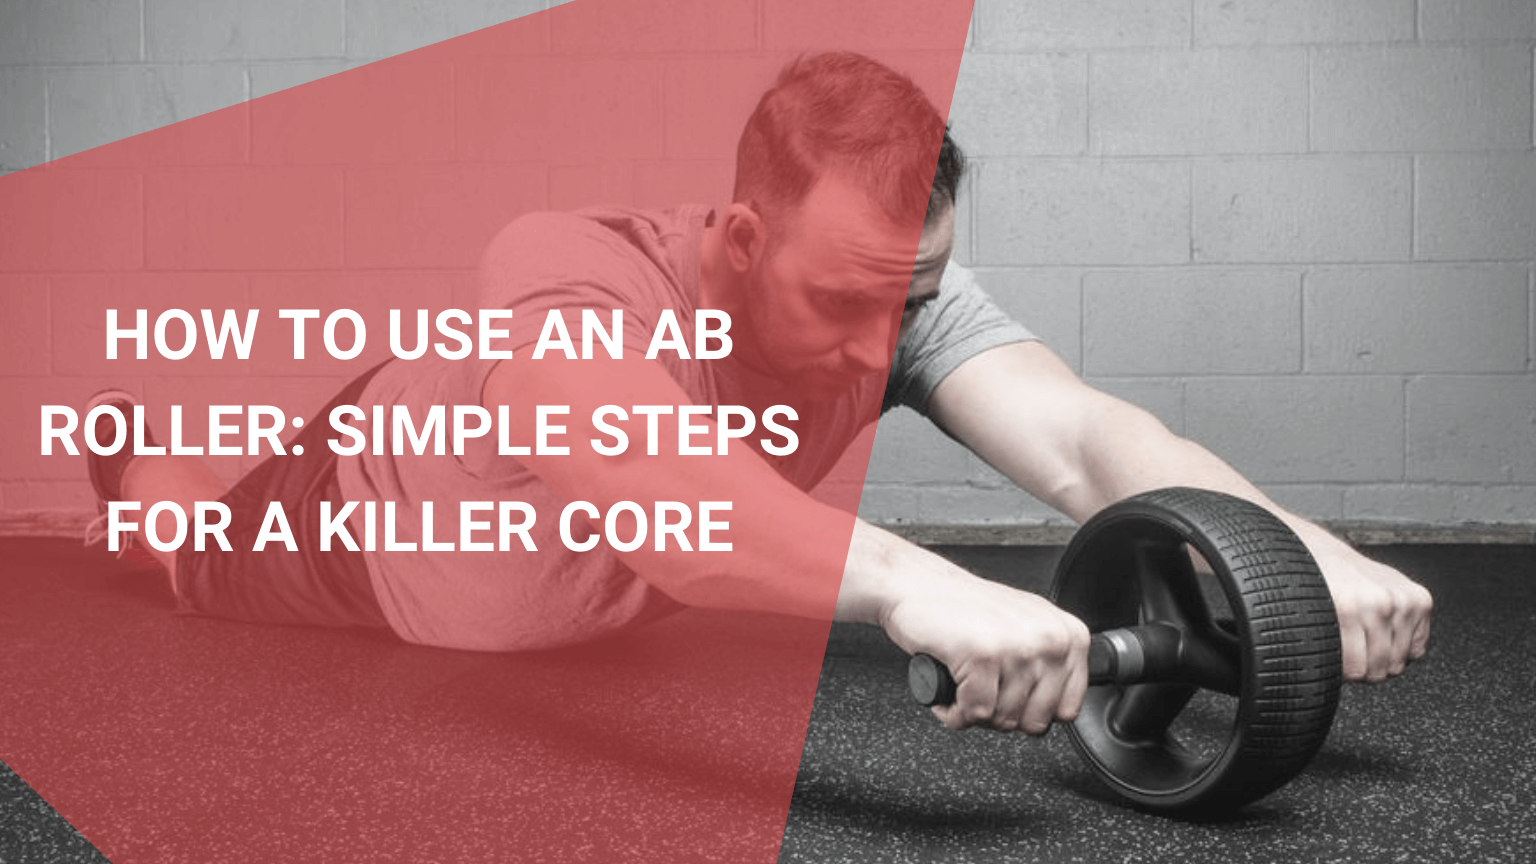 How To Use An Ab Roller, July 2021